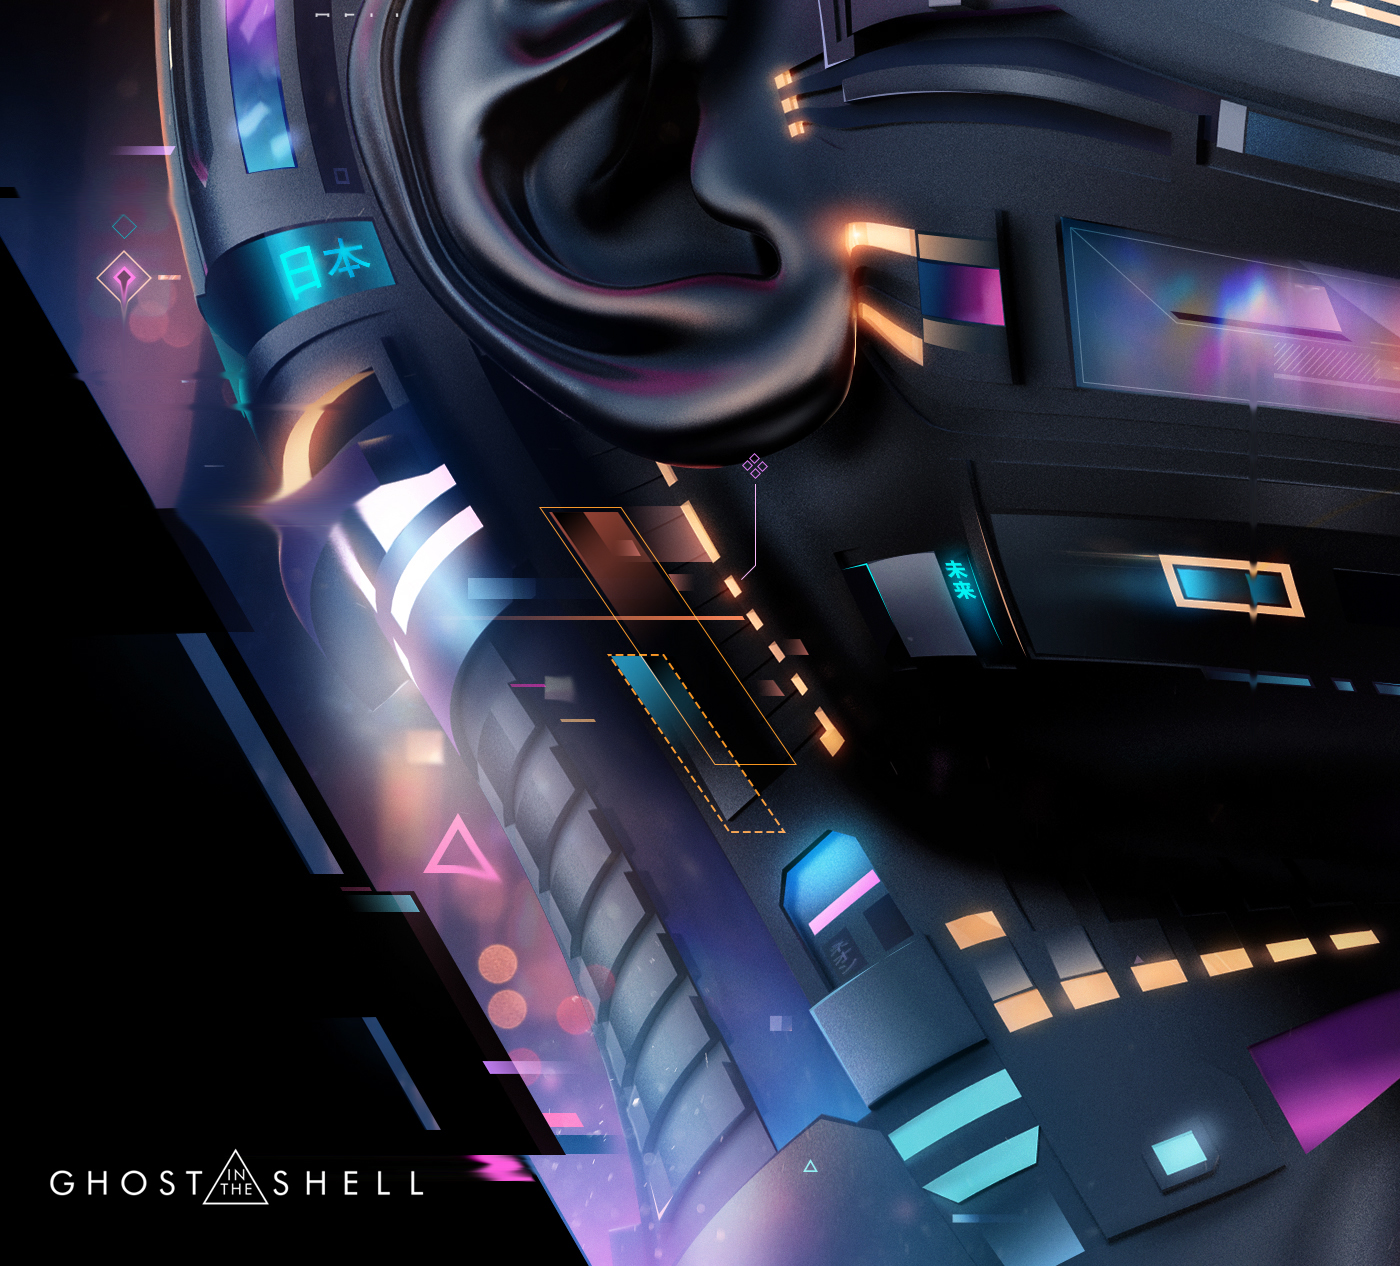 HACK'D Illustration Officially for Ghost In The Shell